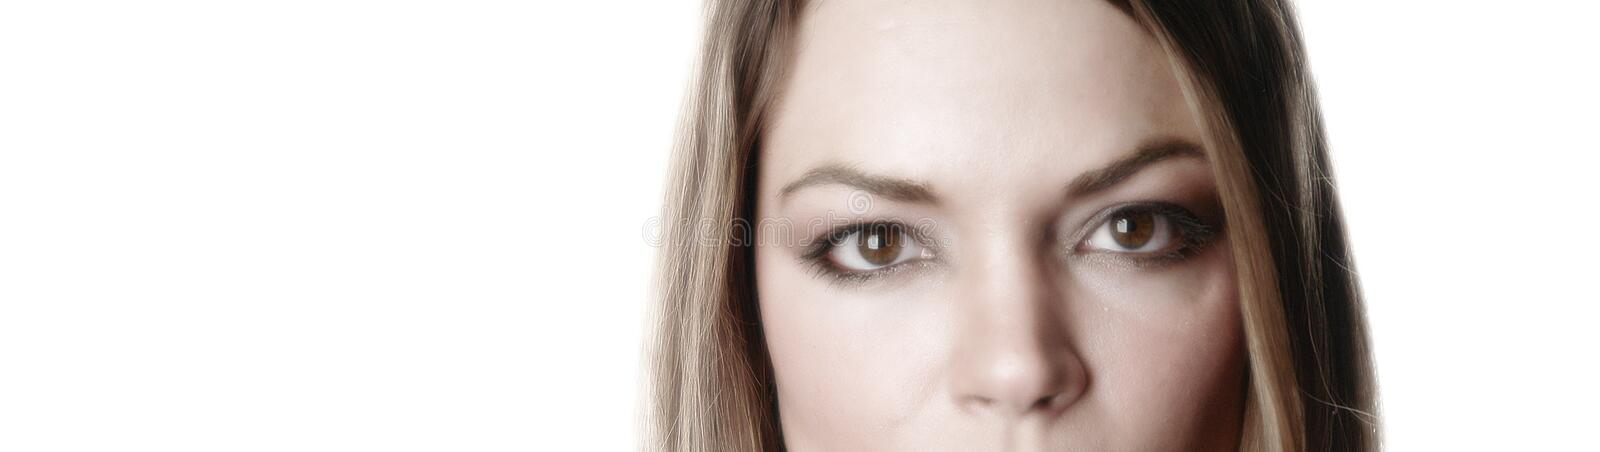 Partial woman face-5 stock images